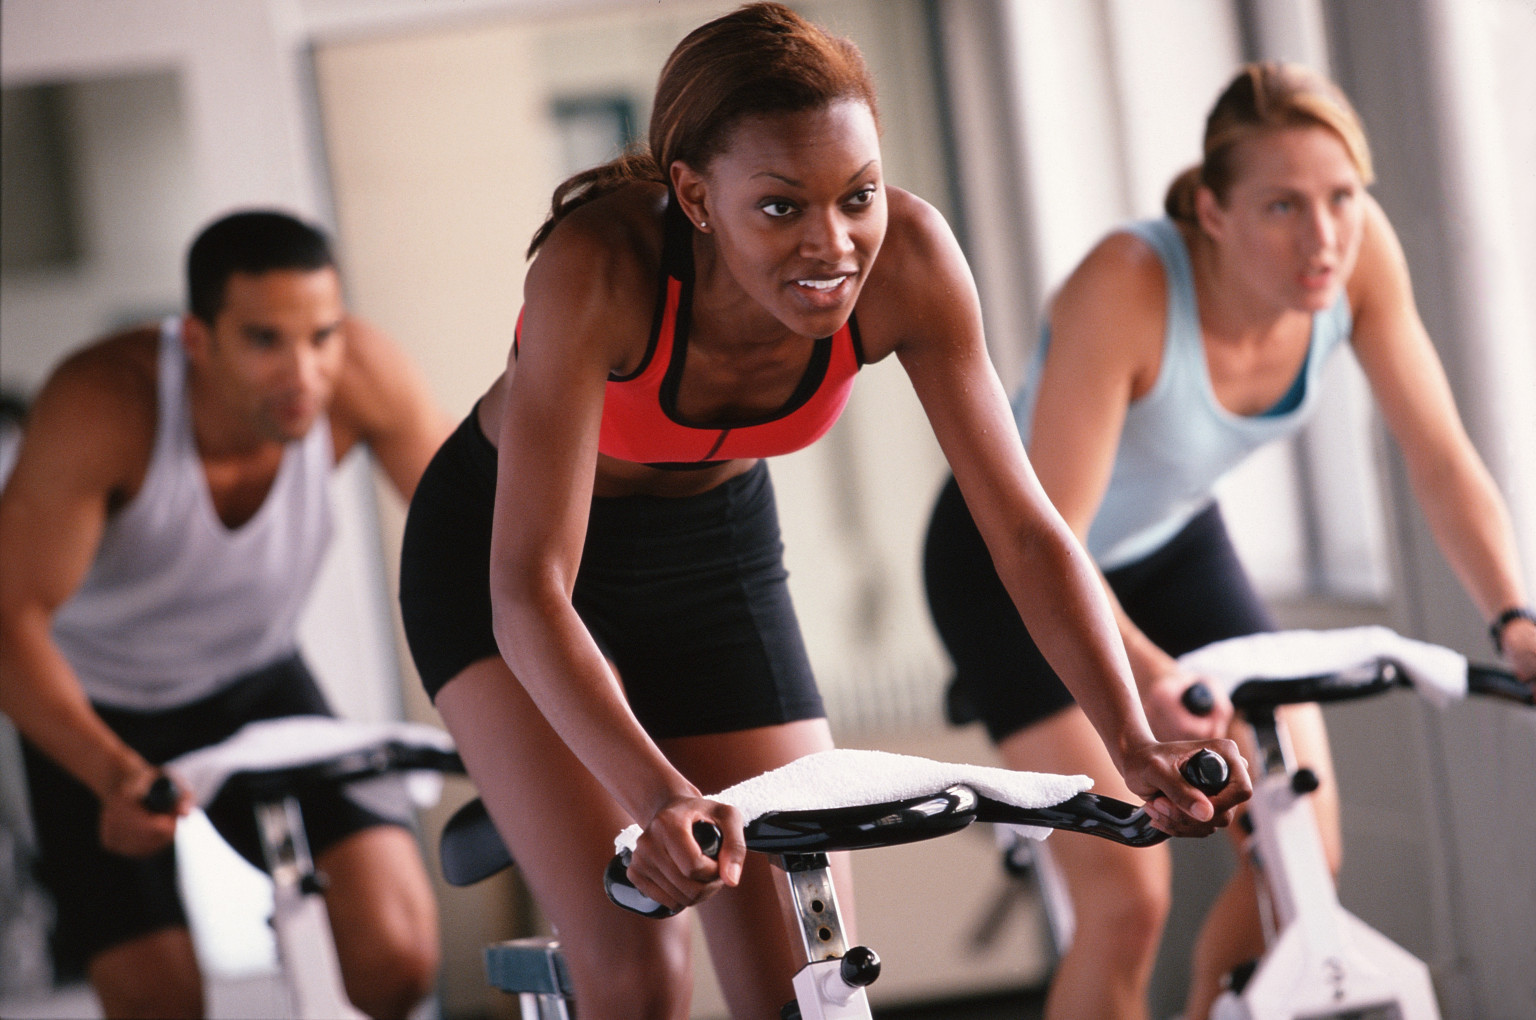 Three adults riding exercise bikes in gym (selective focus)